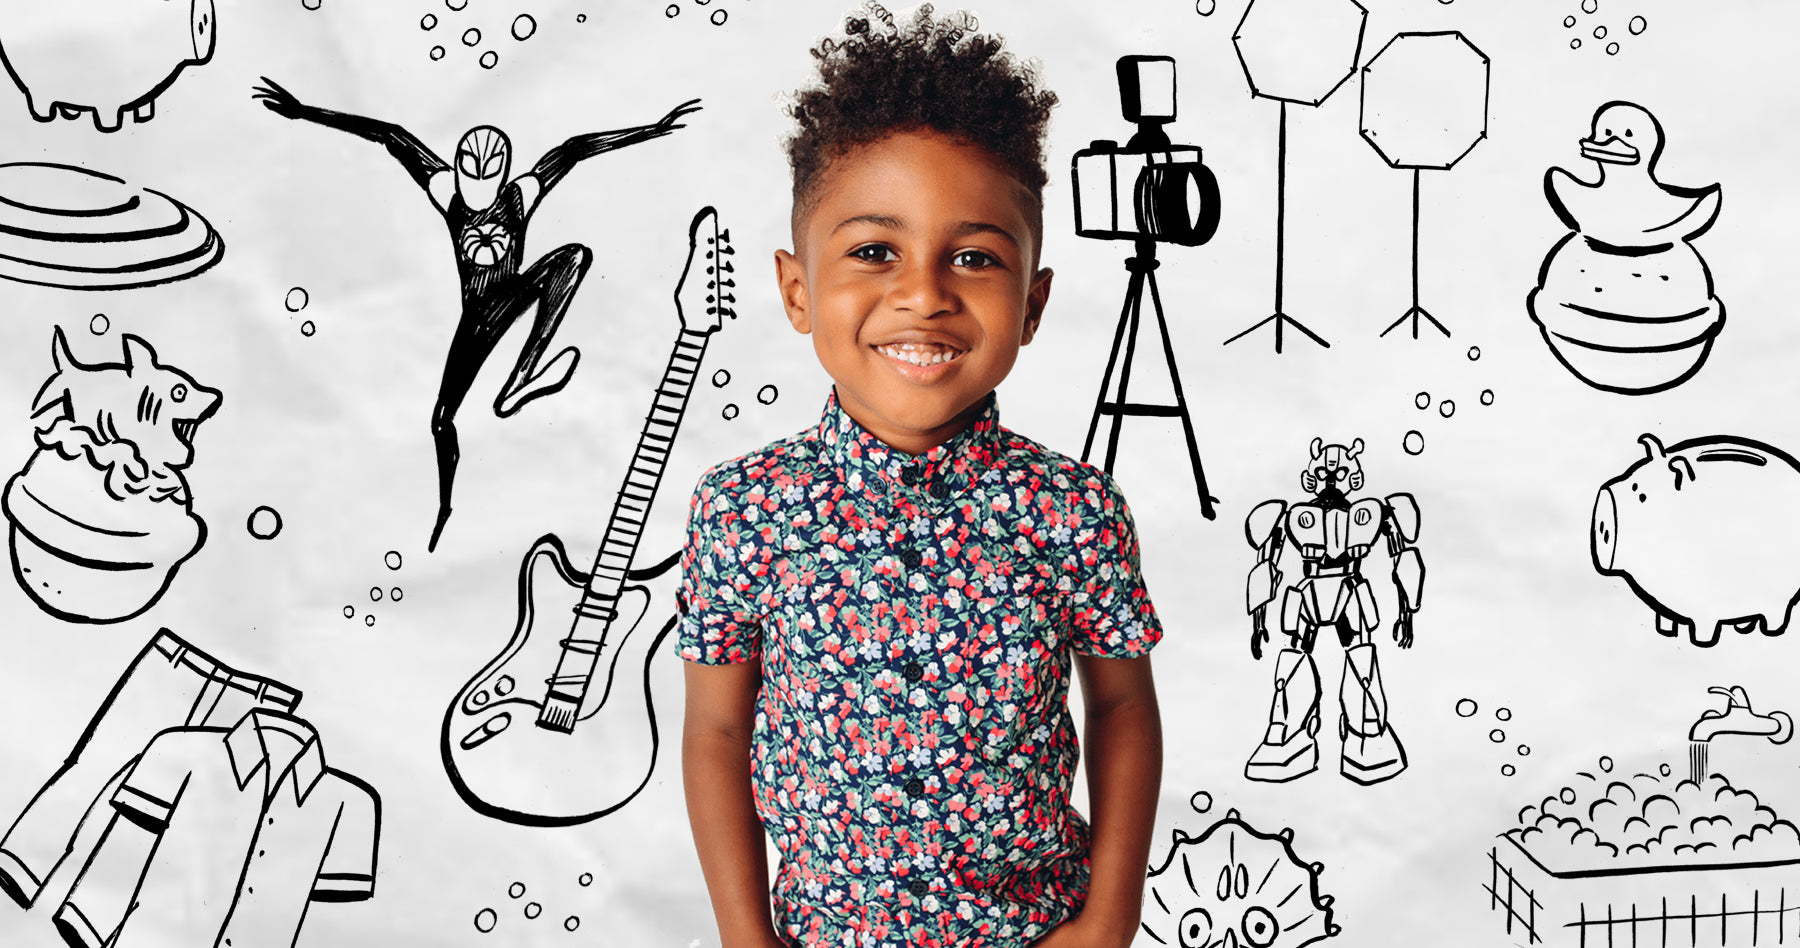 Bath Bombs and Batman: Inside the Mind of a 6-Year-Old Founder